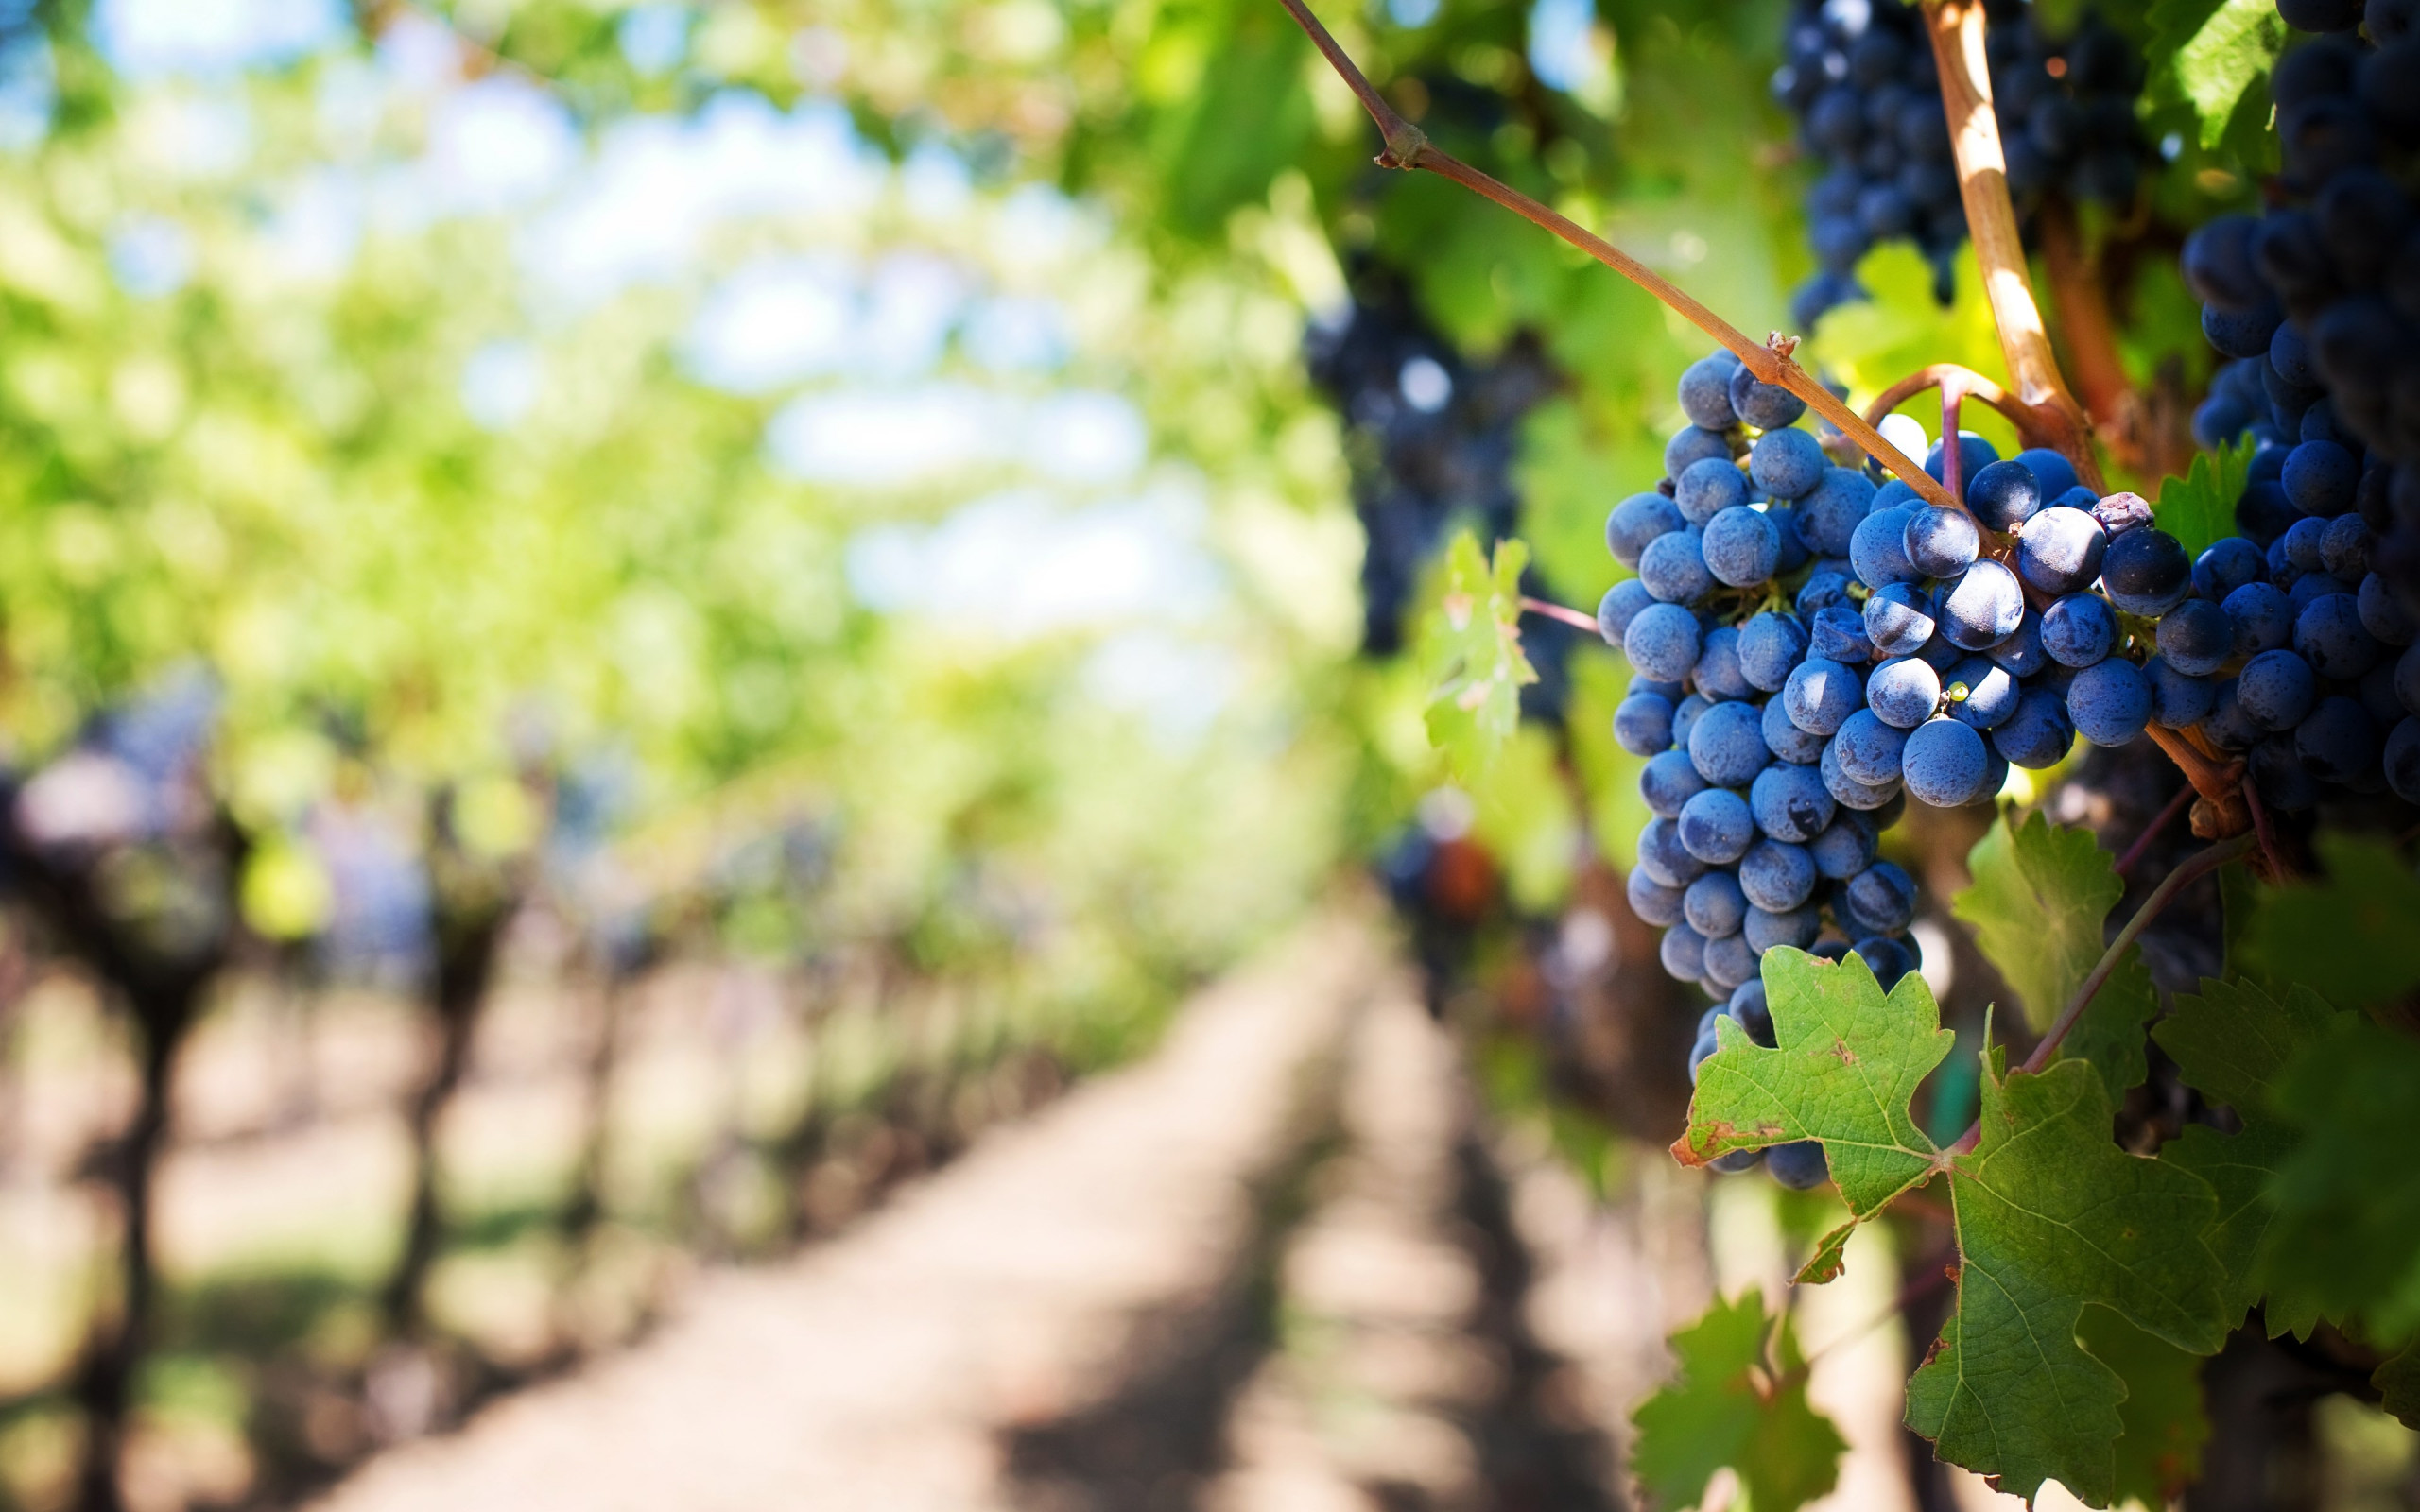 Grapes in vineyard | 2560x1600 wallpaper